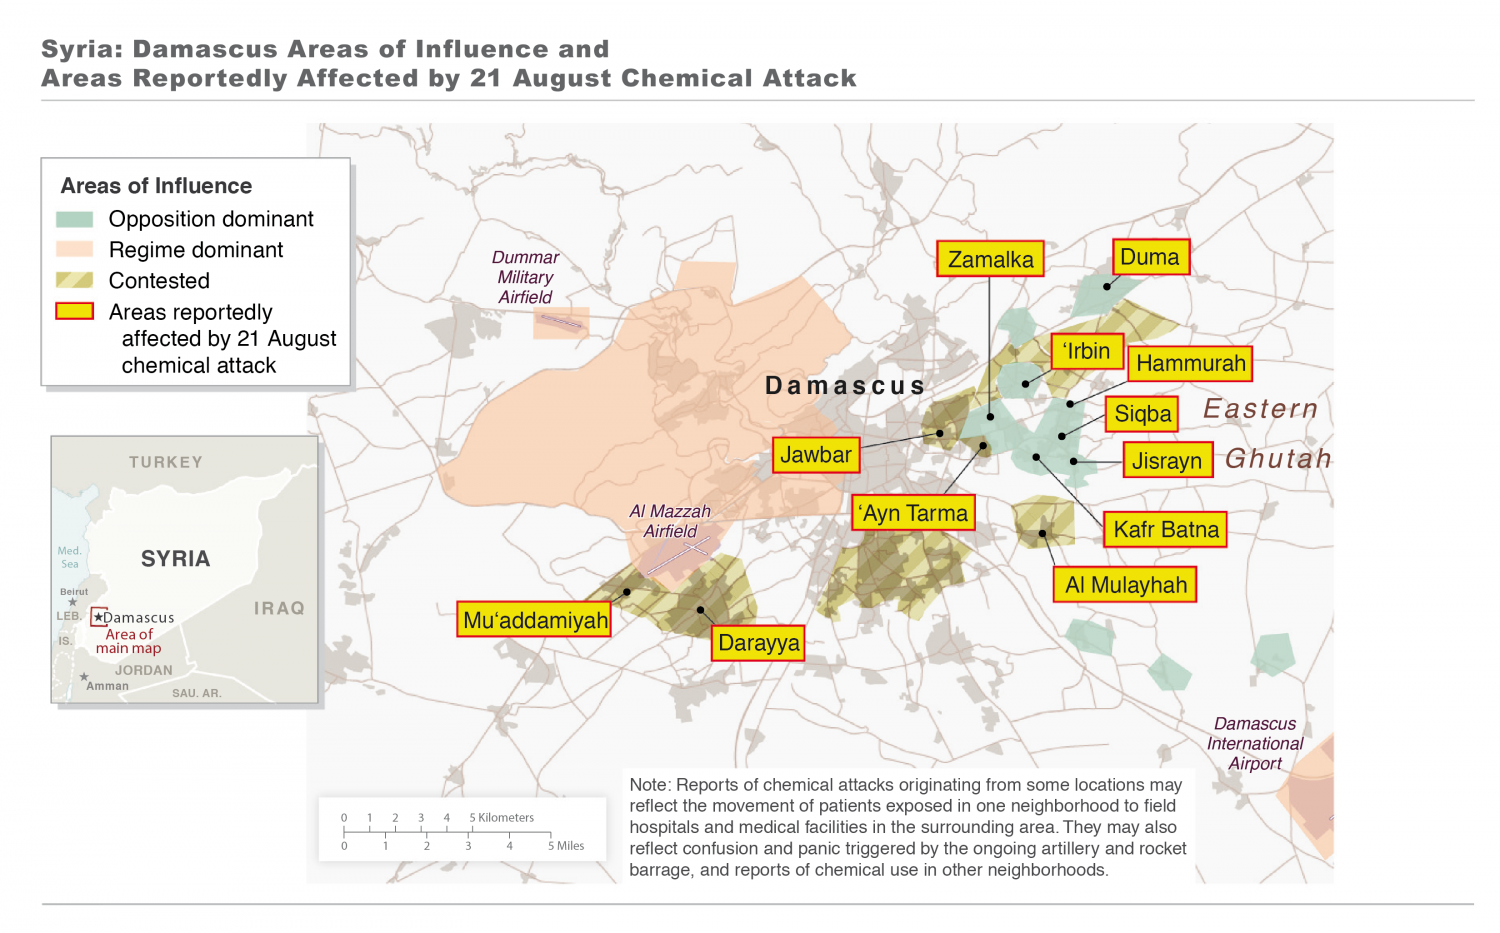 Syria: Damascus Areas of Influence and Areas Reportedly Affected by 21 August Chemical Attack Infographic